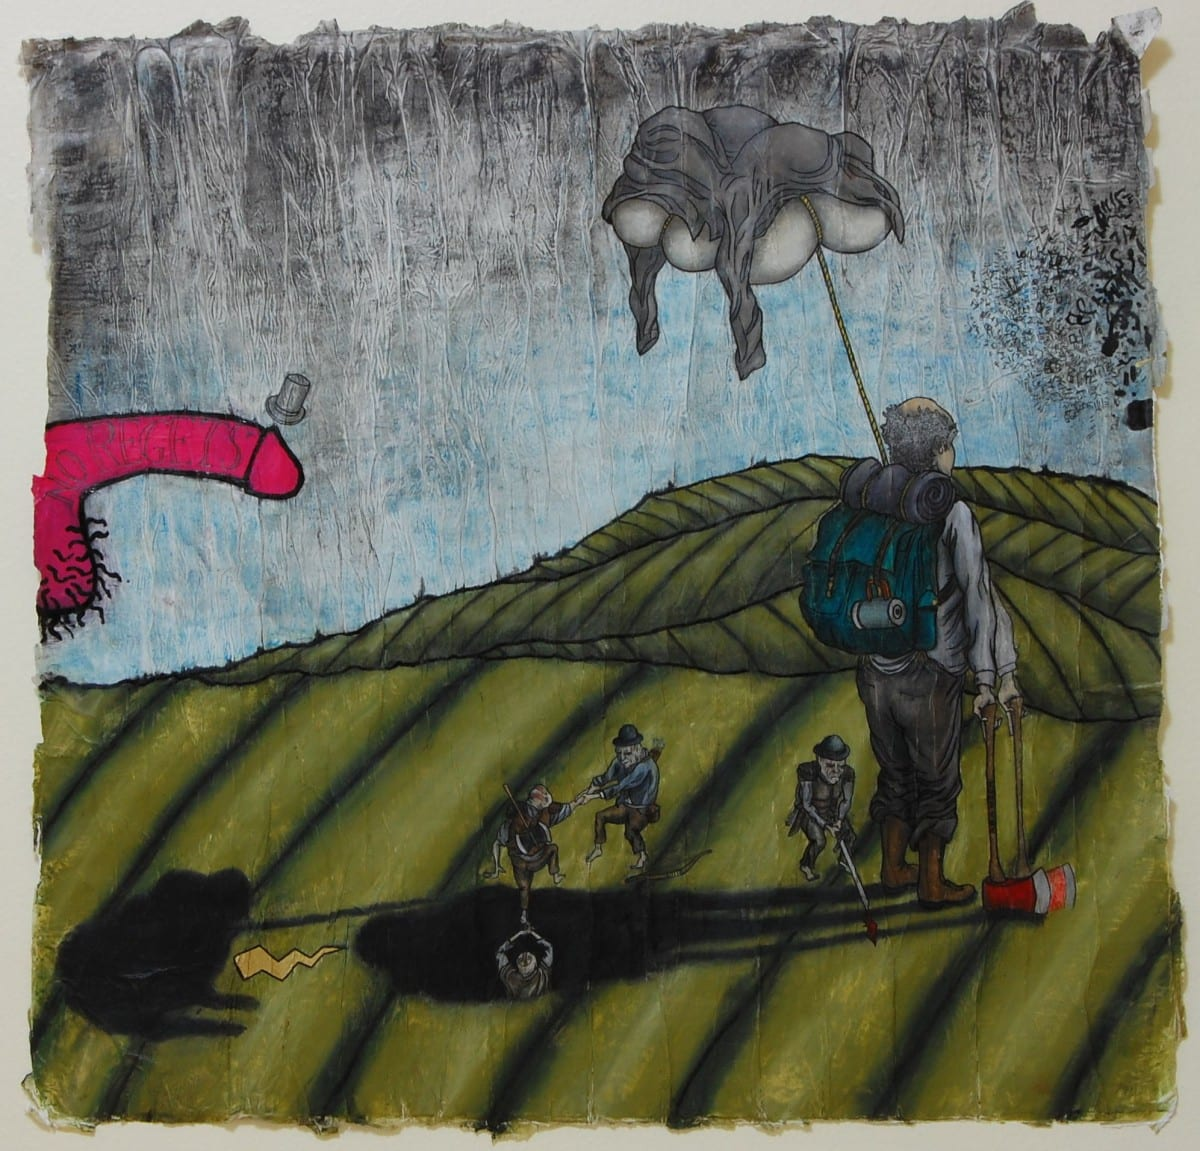 """Jake Townsend, The ballad of terrible on top- No regrets. graphite, pastel, prism color, oil and ink on paper, 24"""" x 23"""", 2015."""